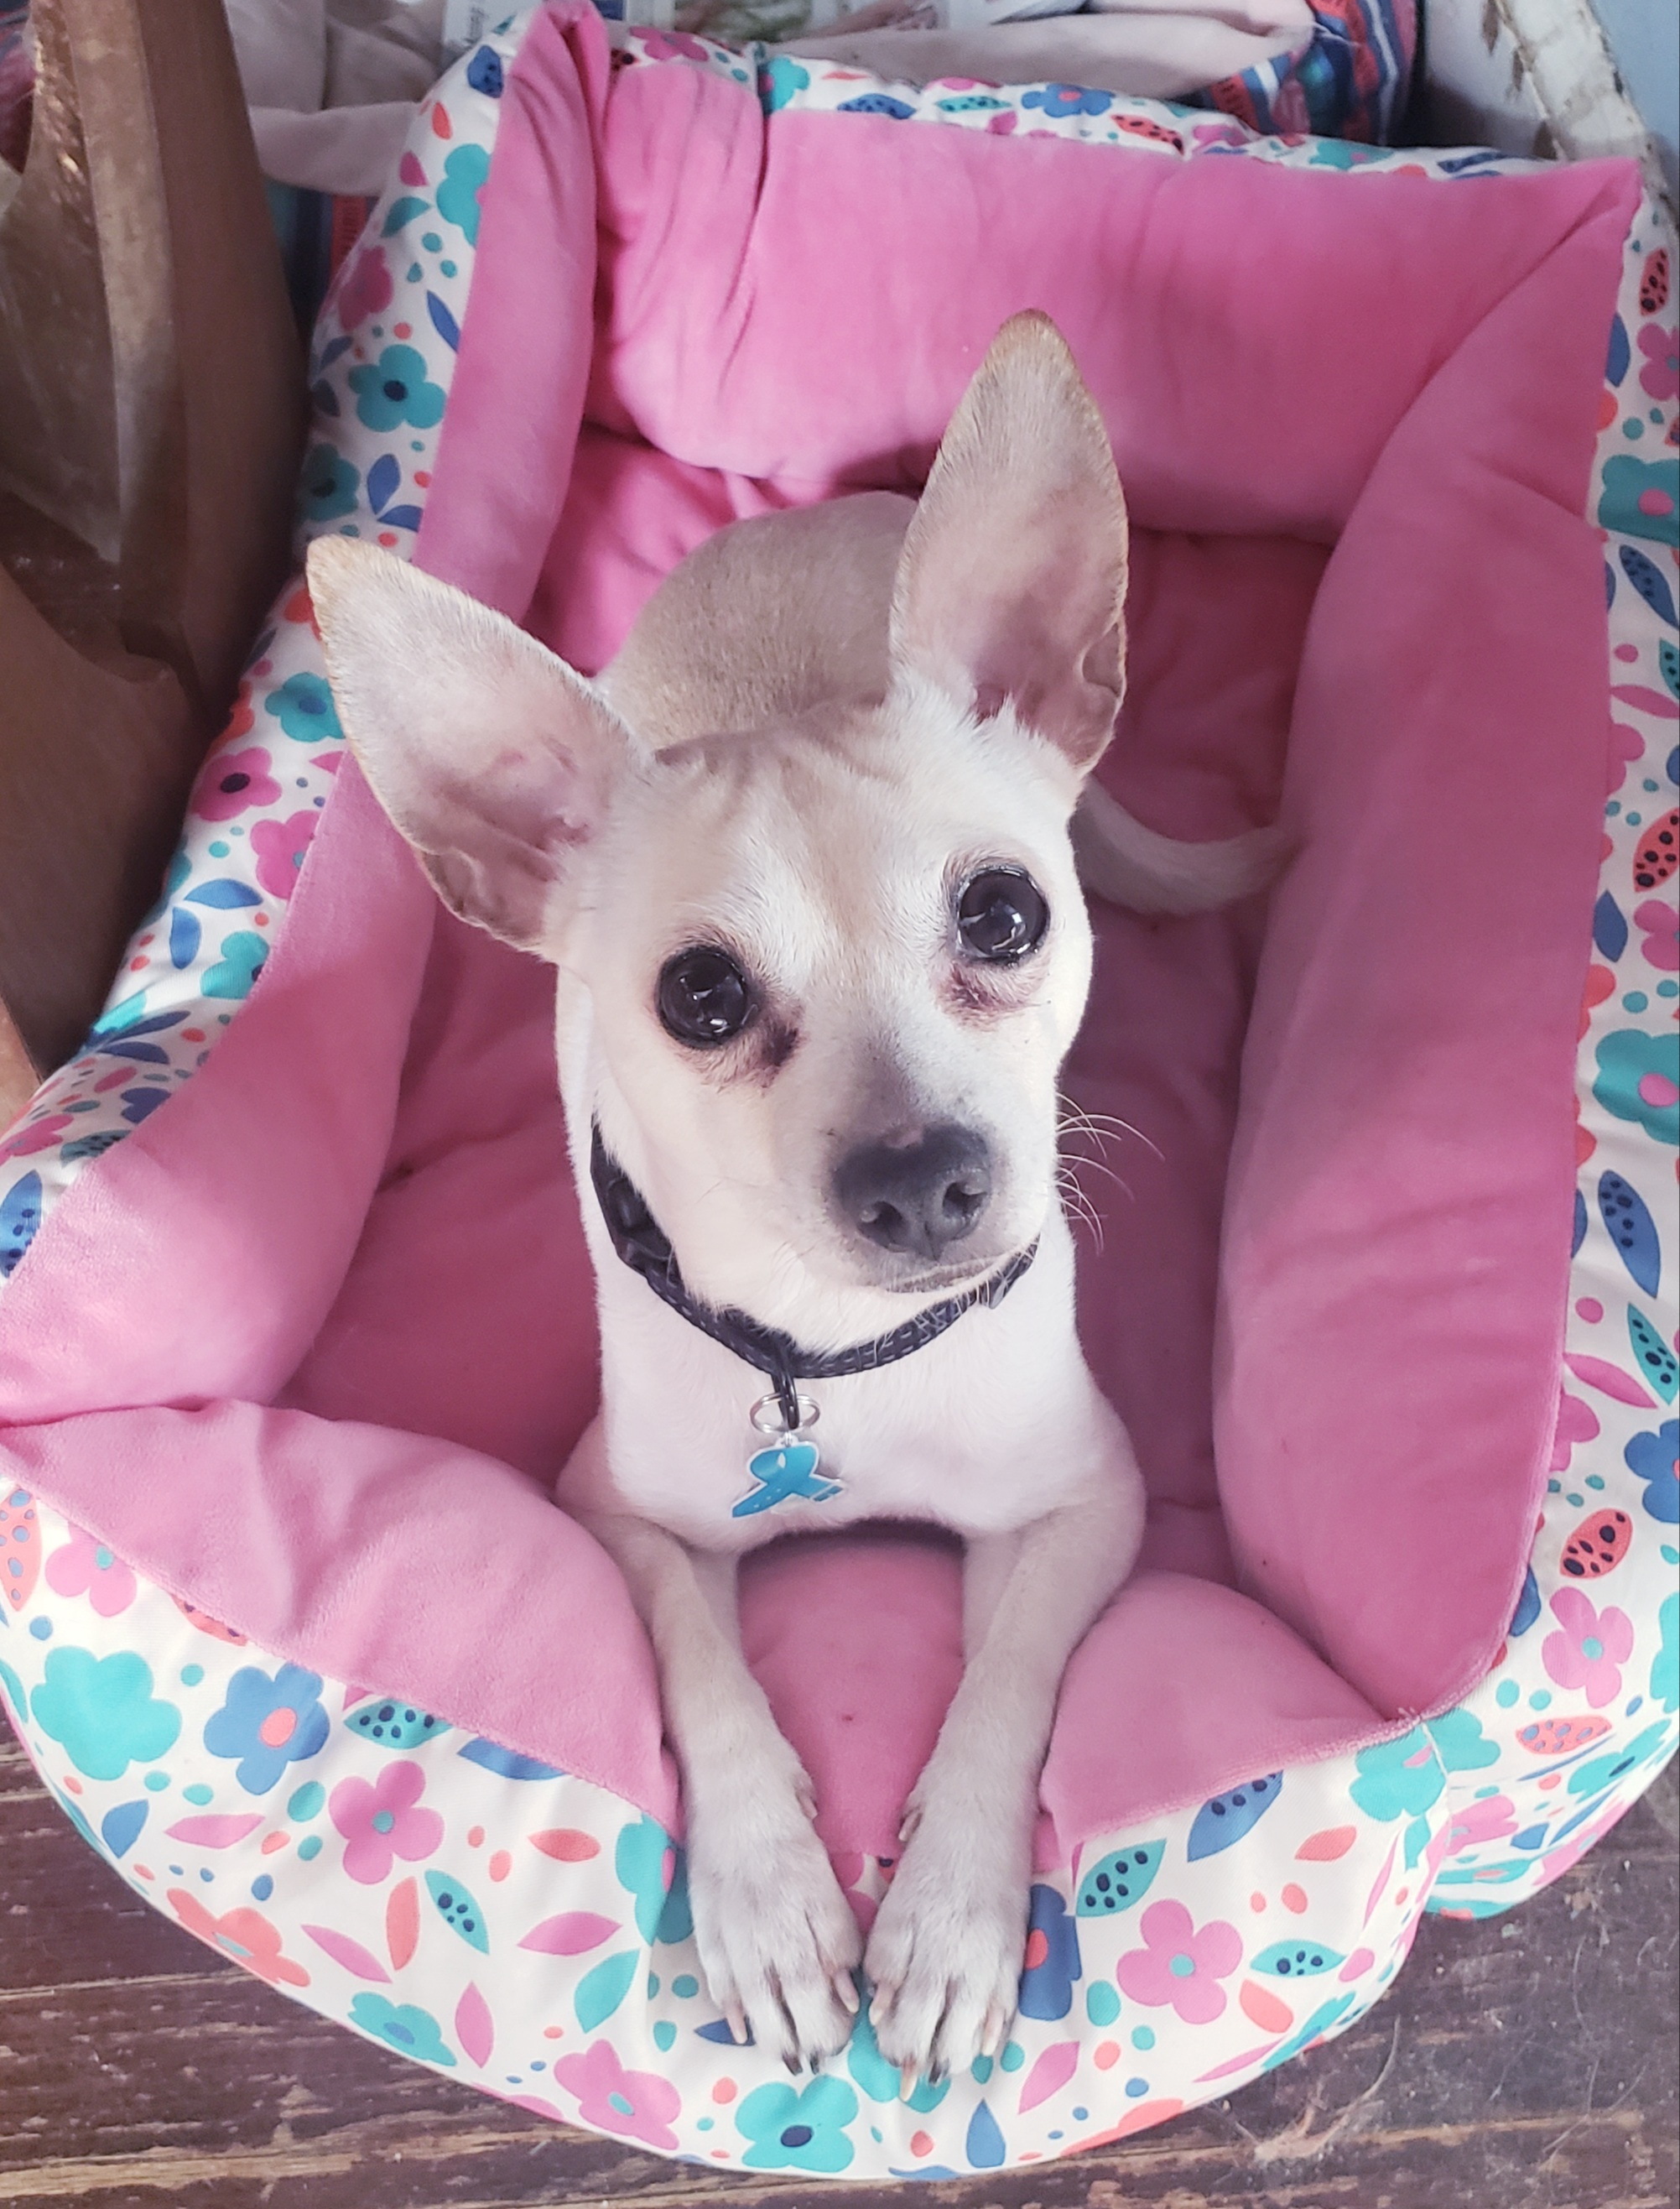 Heart To Tail Travel Pet Bed : heart, travel, Adopt, Clawson, Shelters:, Dogs,, Added, Clawson,, Patch